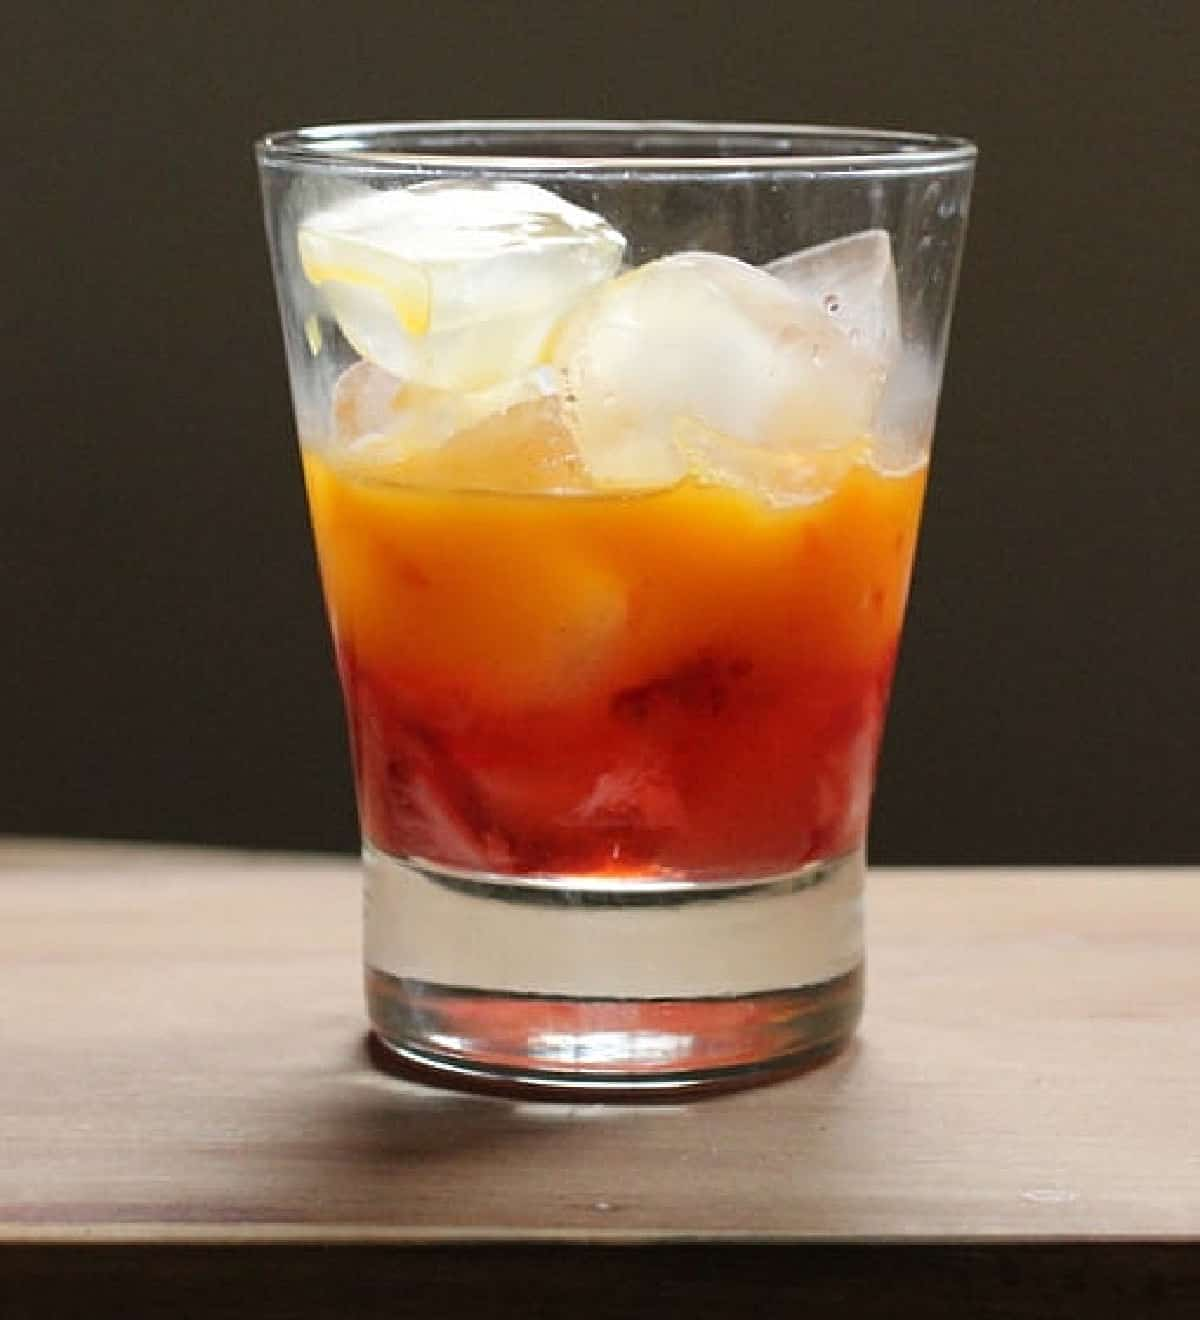 Half filled glass with ice and orange colored drink on wooden board